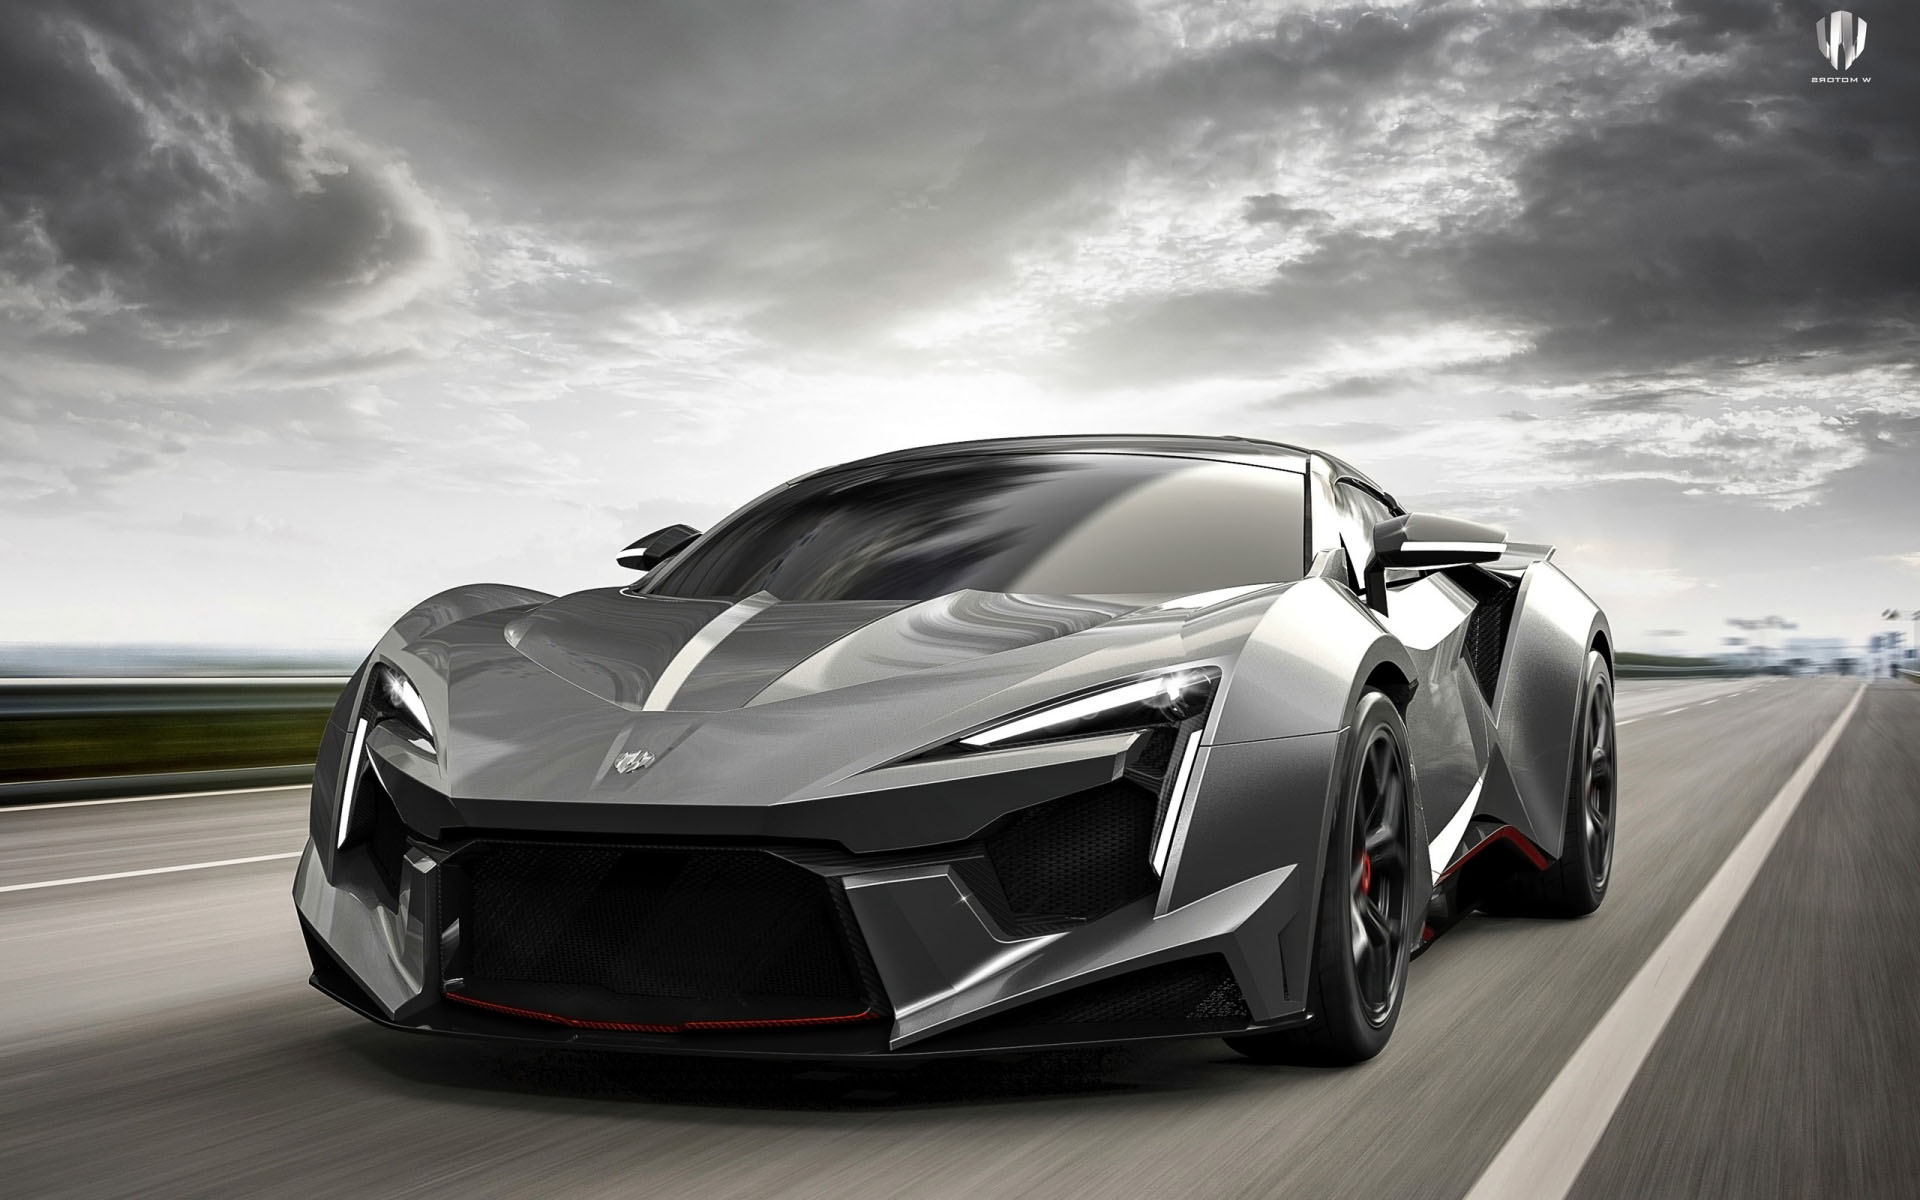 2016 Wmotors Supercar Wallpaper All About Gallery Car 1920x1200